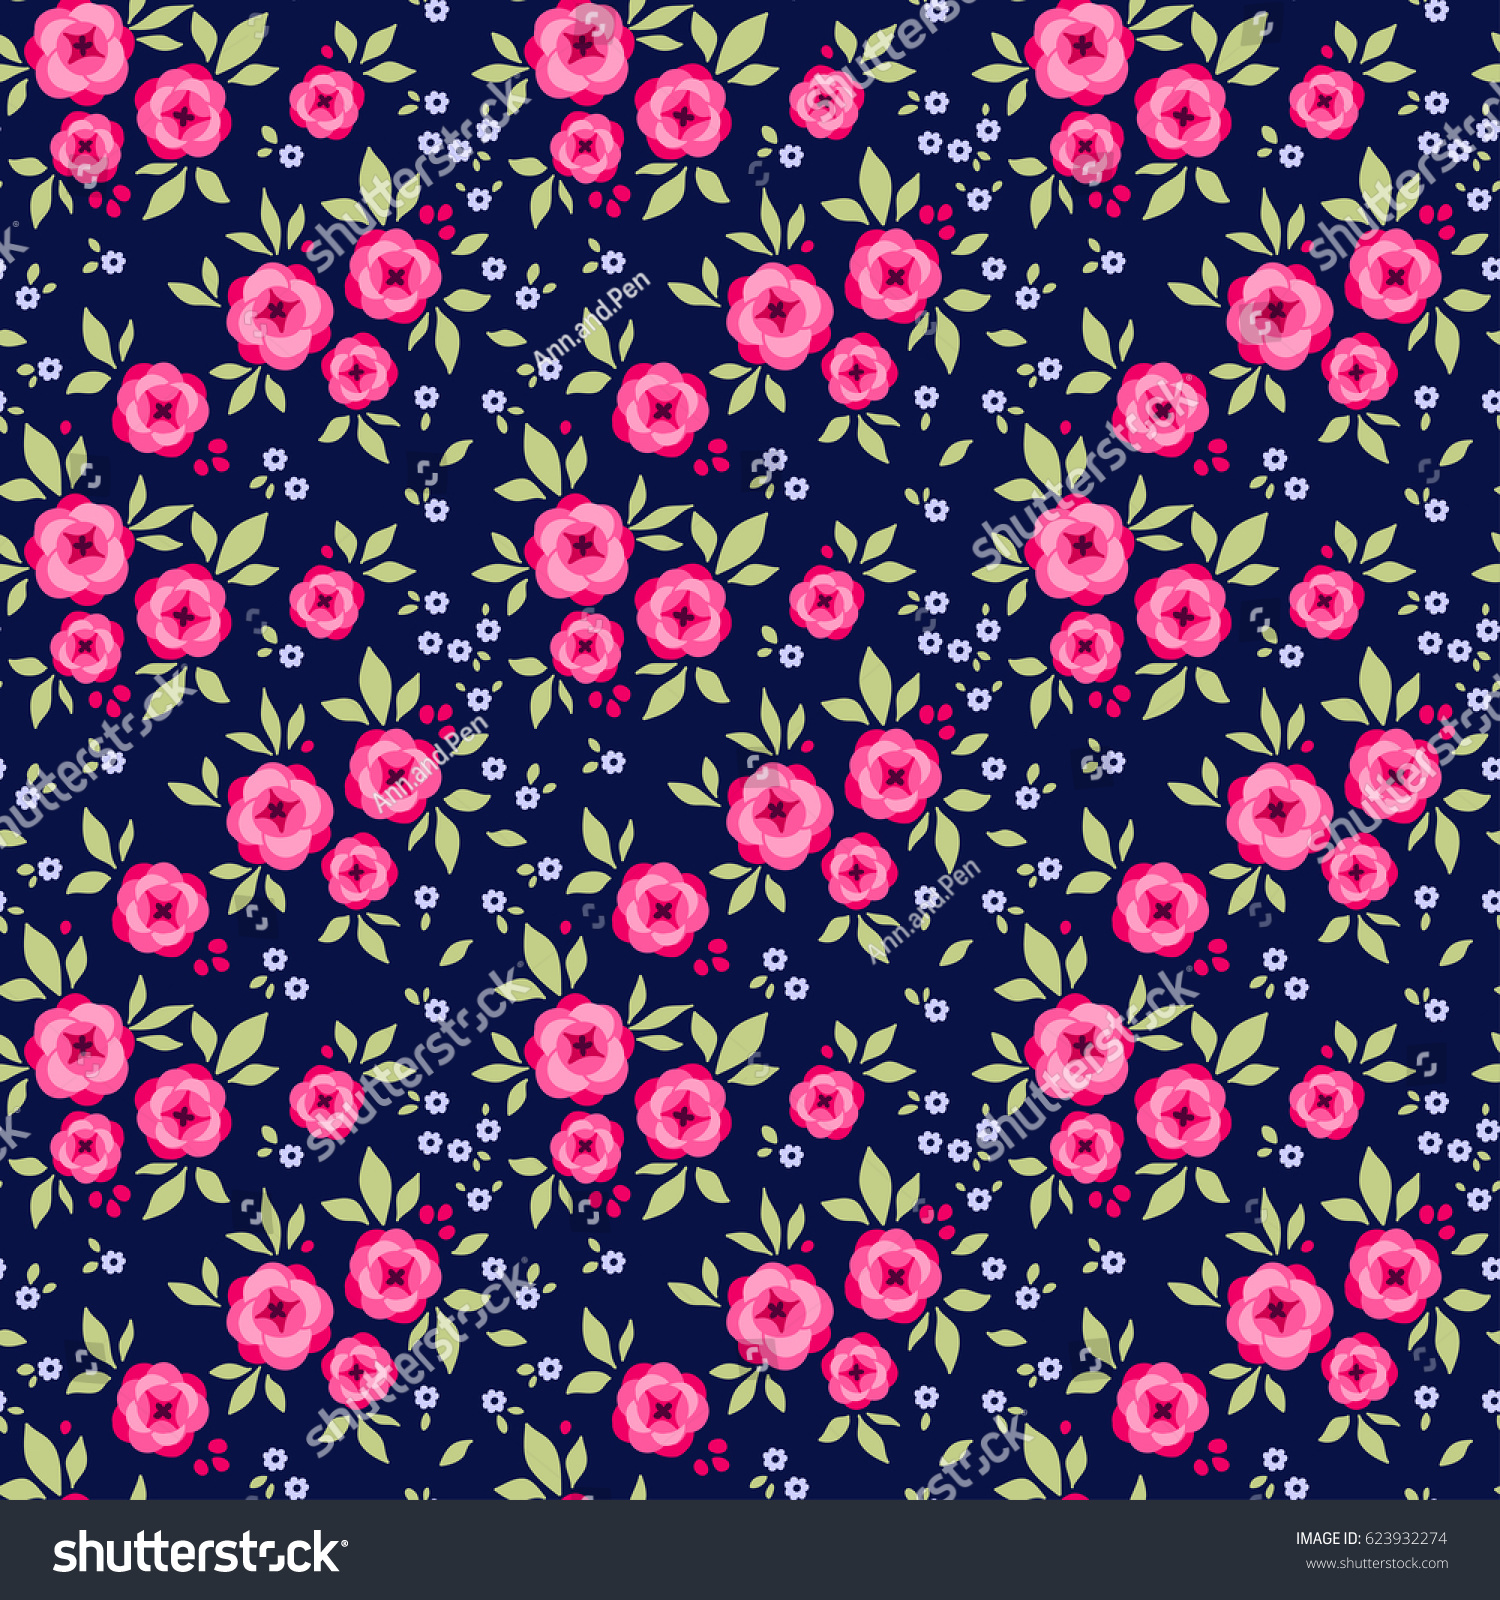 Floral pattern pretty flowers on dark stock vector royalty free floral pattern pretty flowers on dark blue background printing with small pink roses flowers mightylinksfo